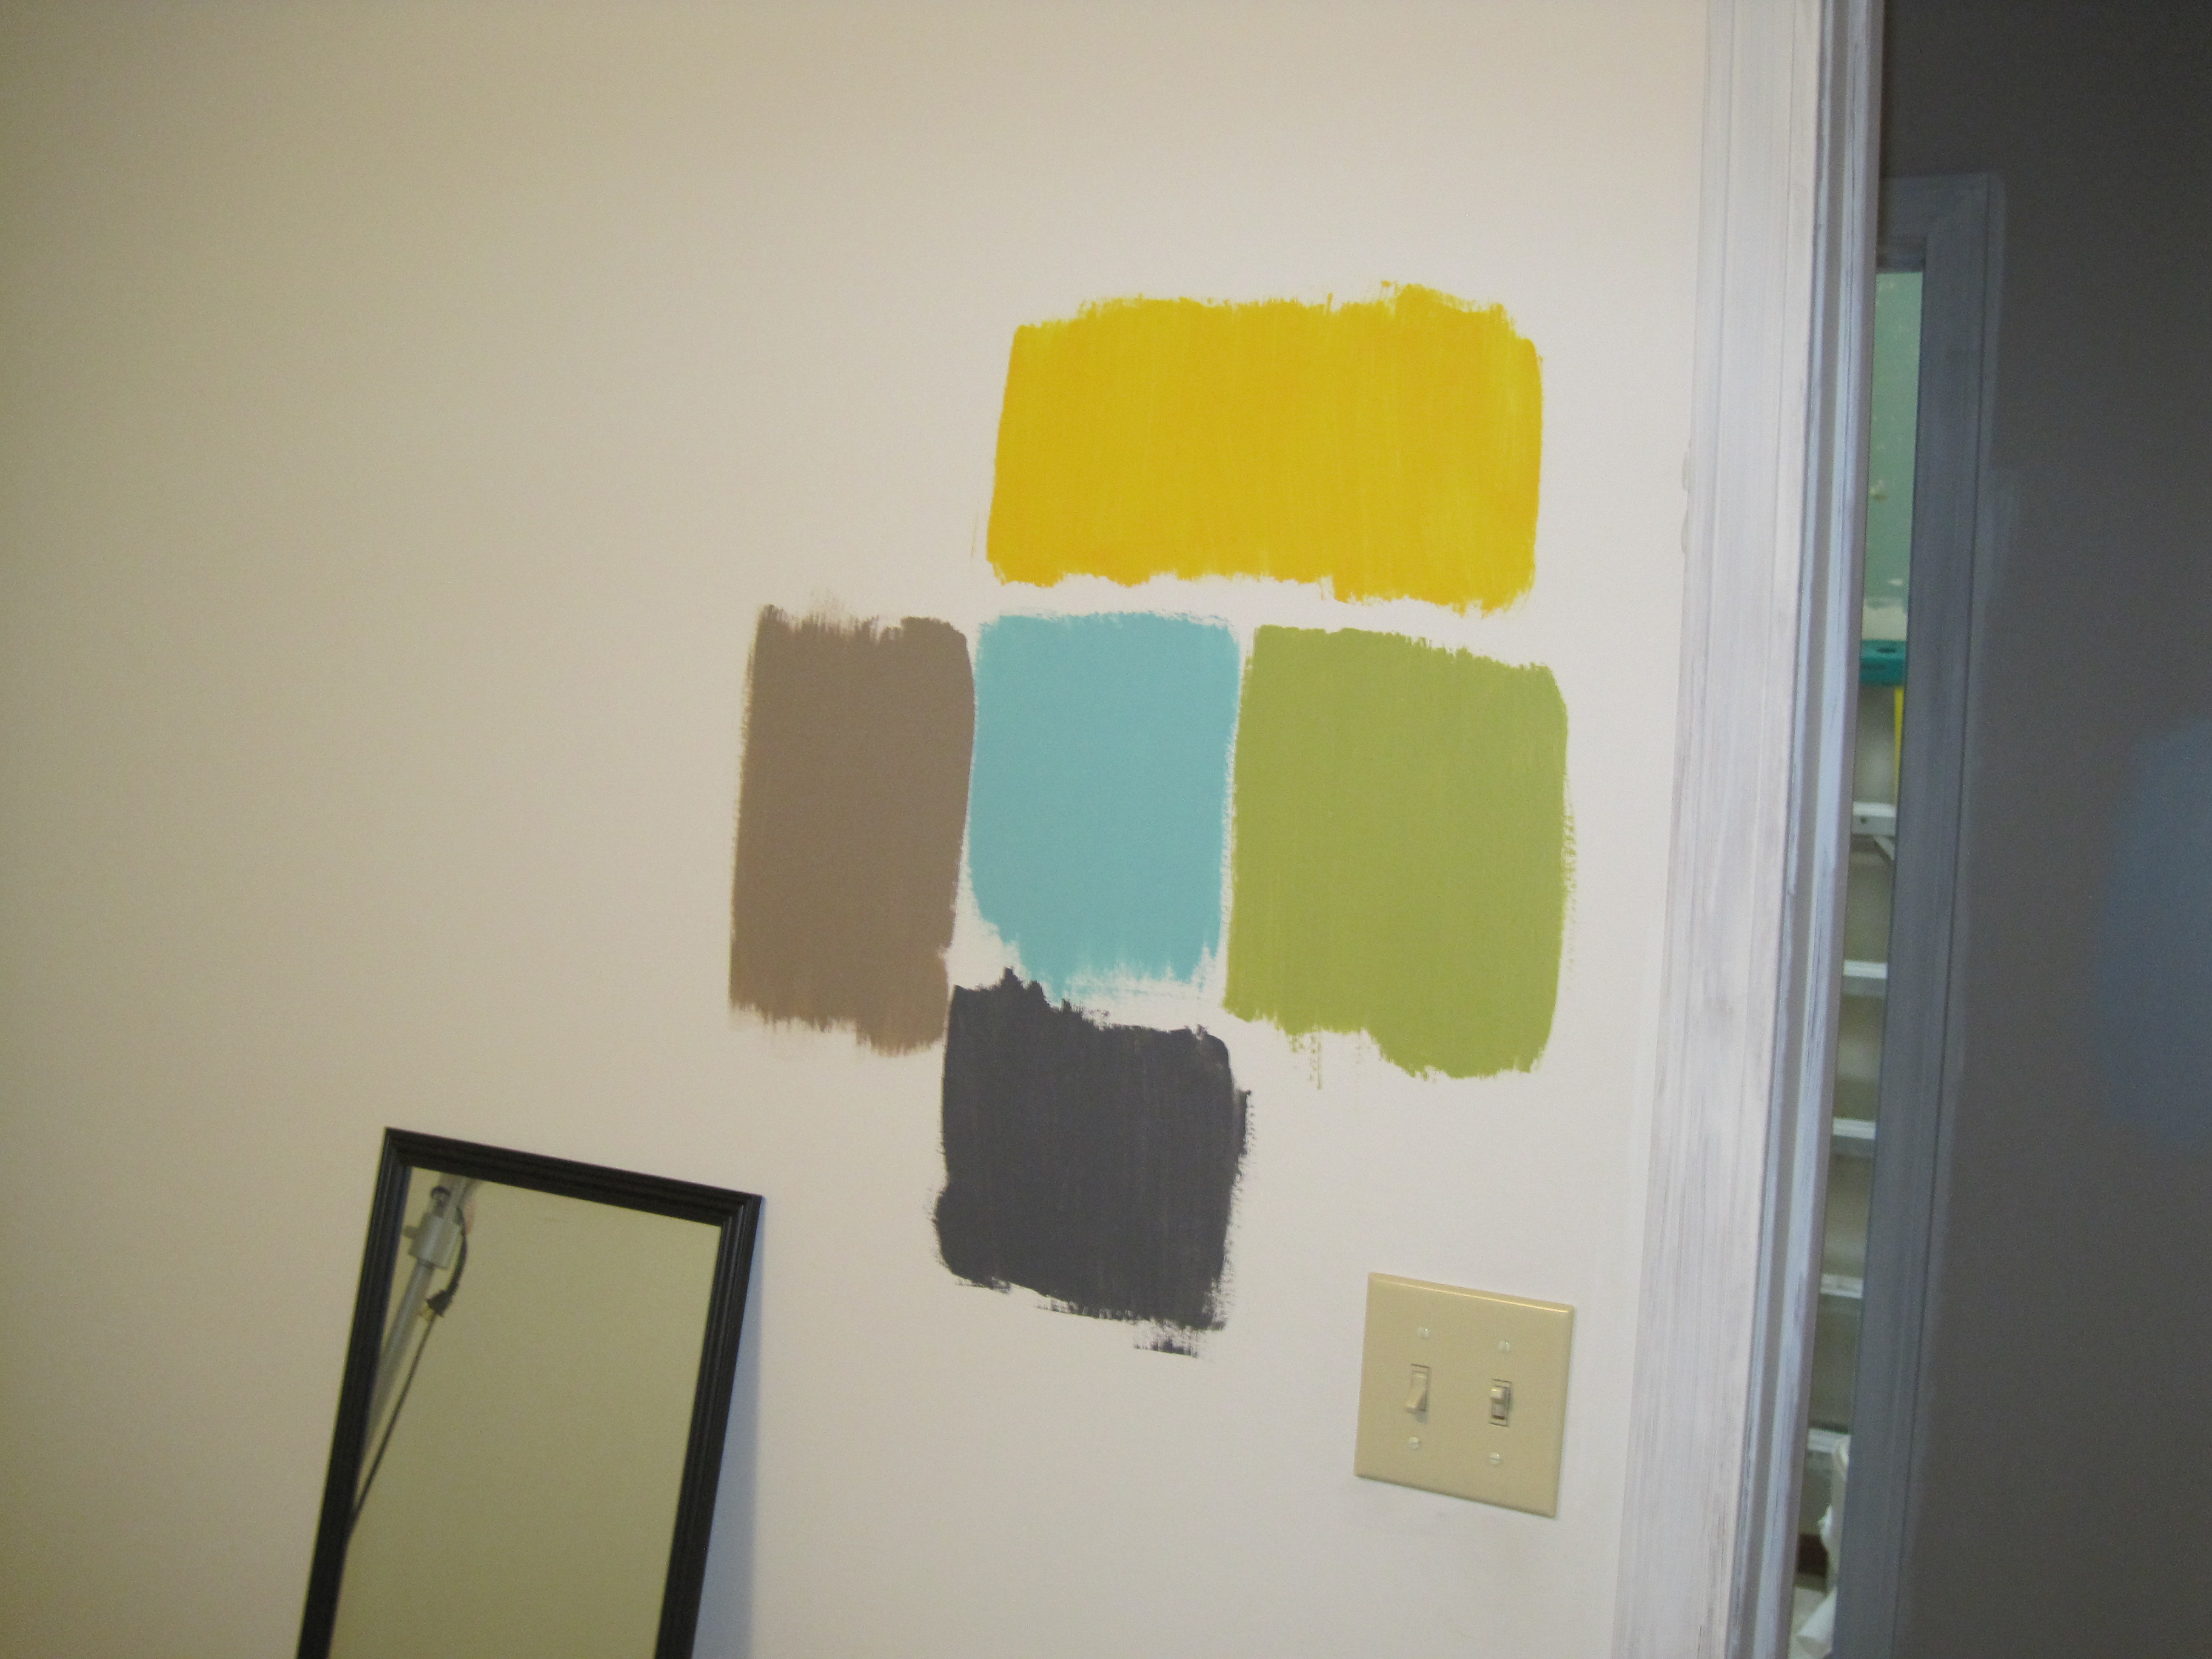 This is what the wall in my office looked like until yesterday. After pictures coming soon. Any guesses on which color I chose?